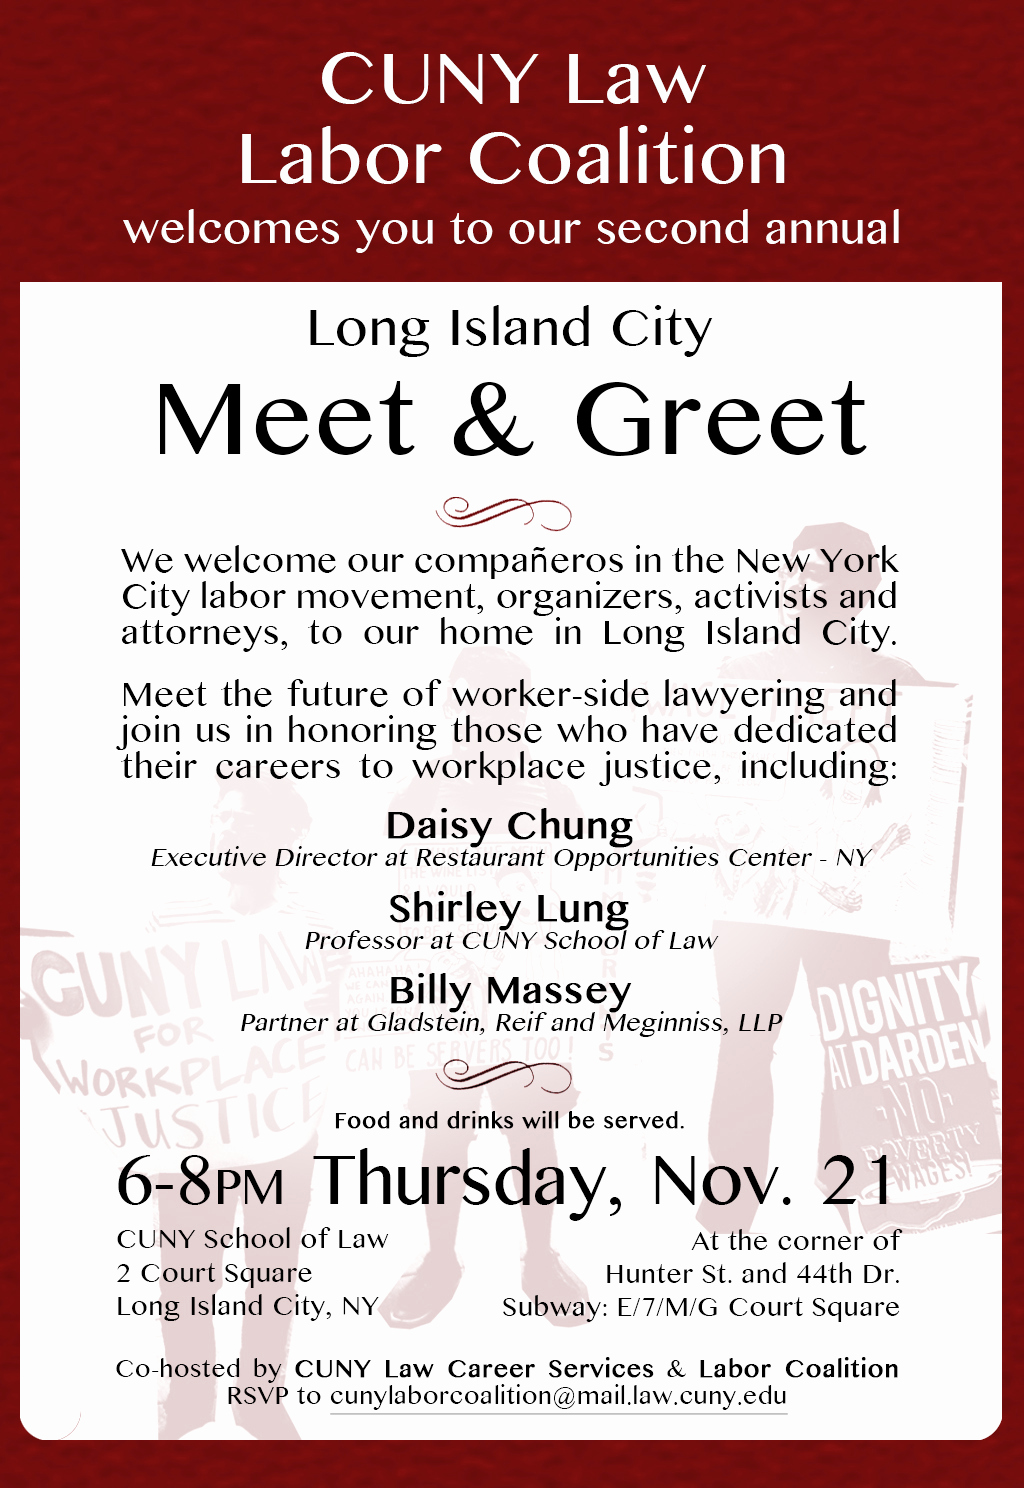 Meet and Greet Invitation Best Of Cuny Law Labor Coalition Invitation to 2nd Annual Meet